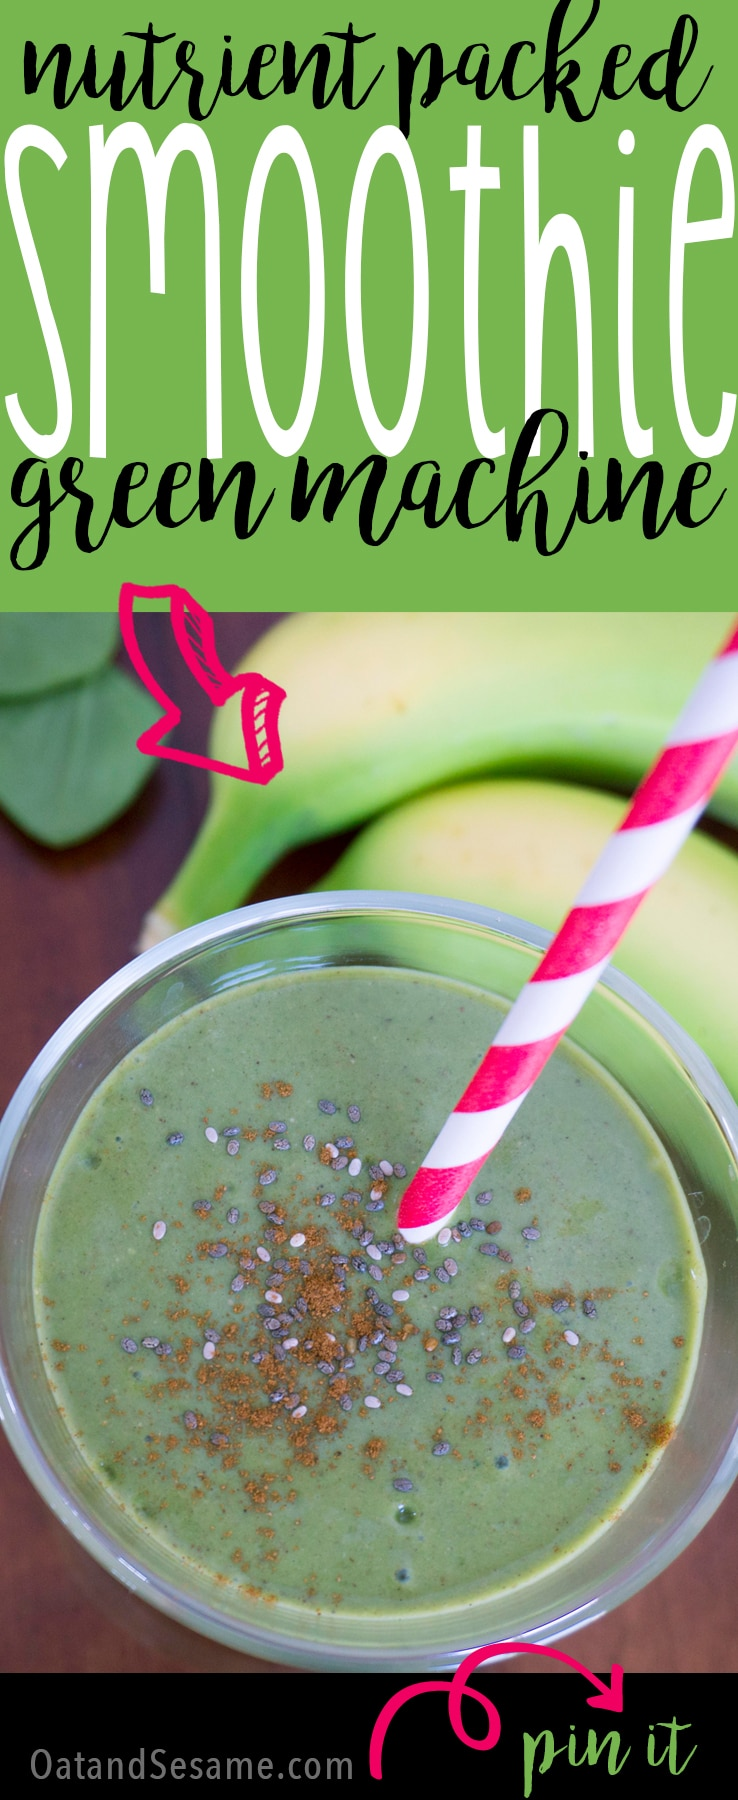 Green Machine Spinach Smoothie - the perfect blend of peanut butter and spinach make this healthy, nutrient packed smoothie! | SMOOTHIES | VEGETARIAN | VEGAN | HEALTHY | Recipe at OatandSesame.com